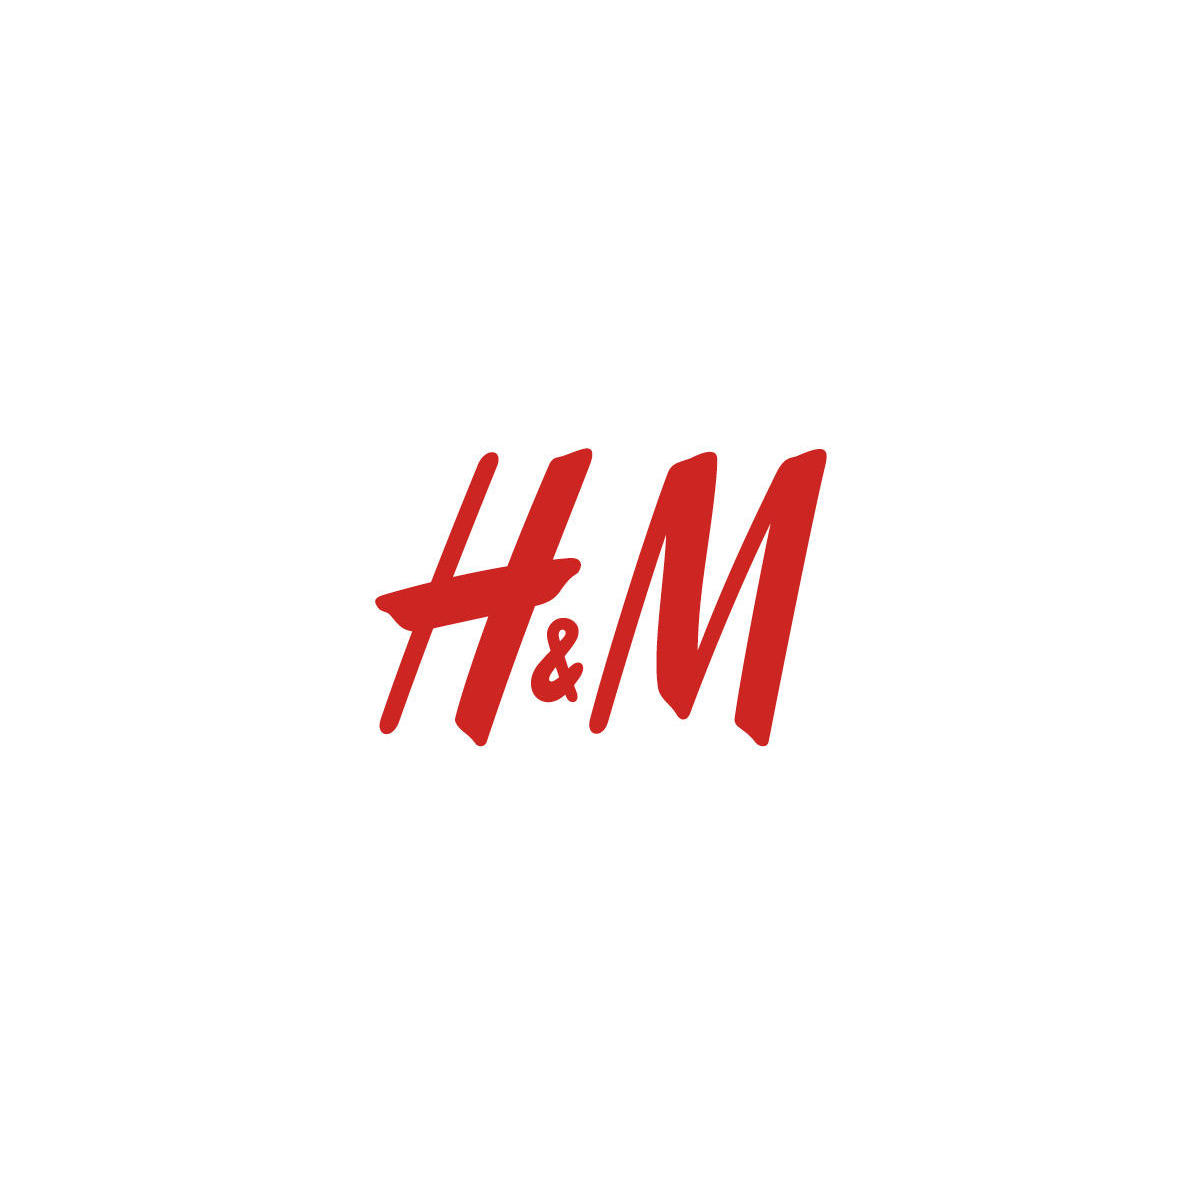 H&M - North Attleboro, MA - Apparel Stores